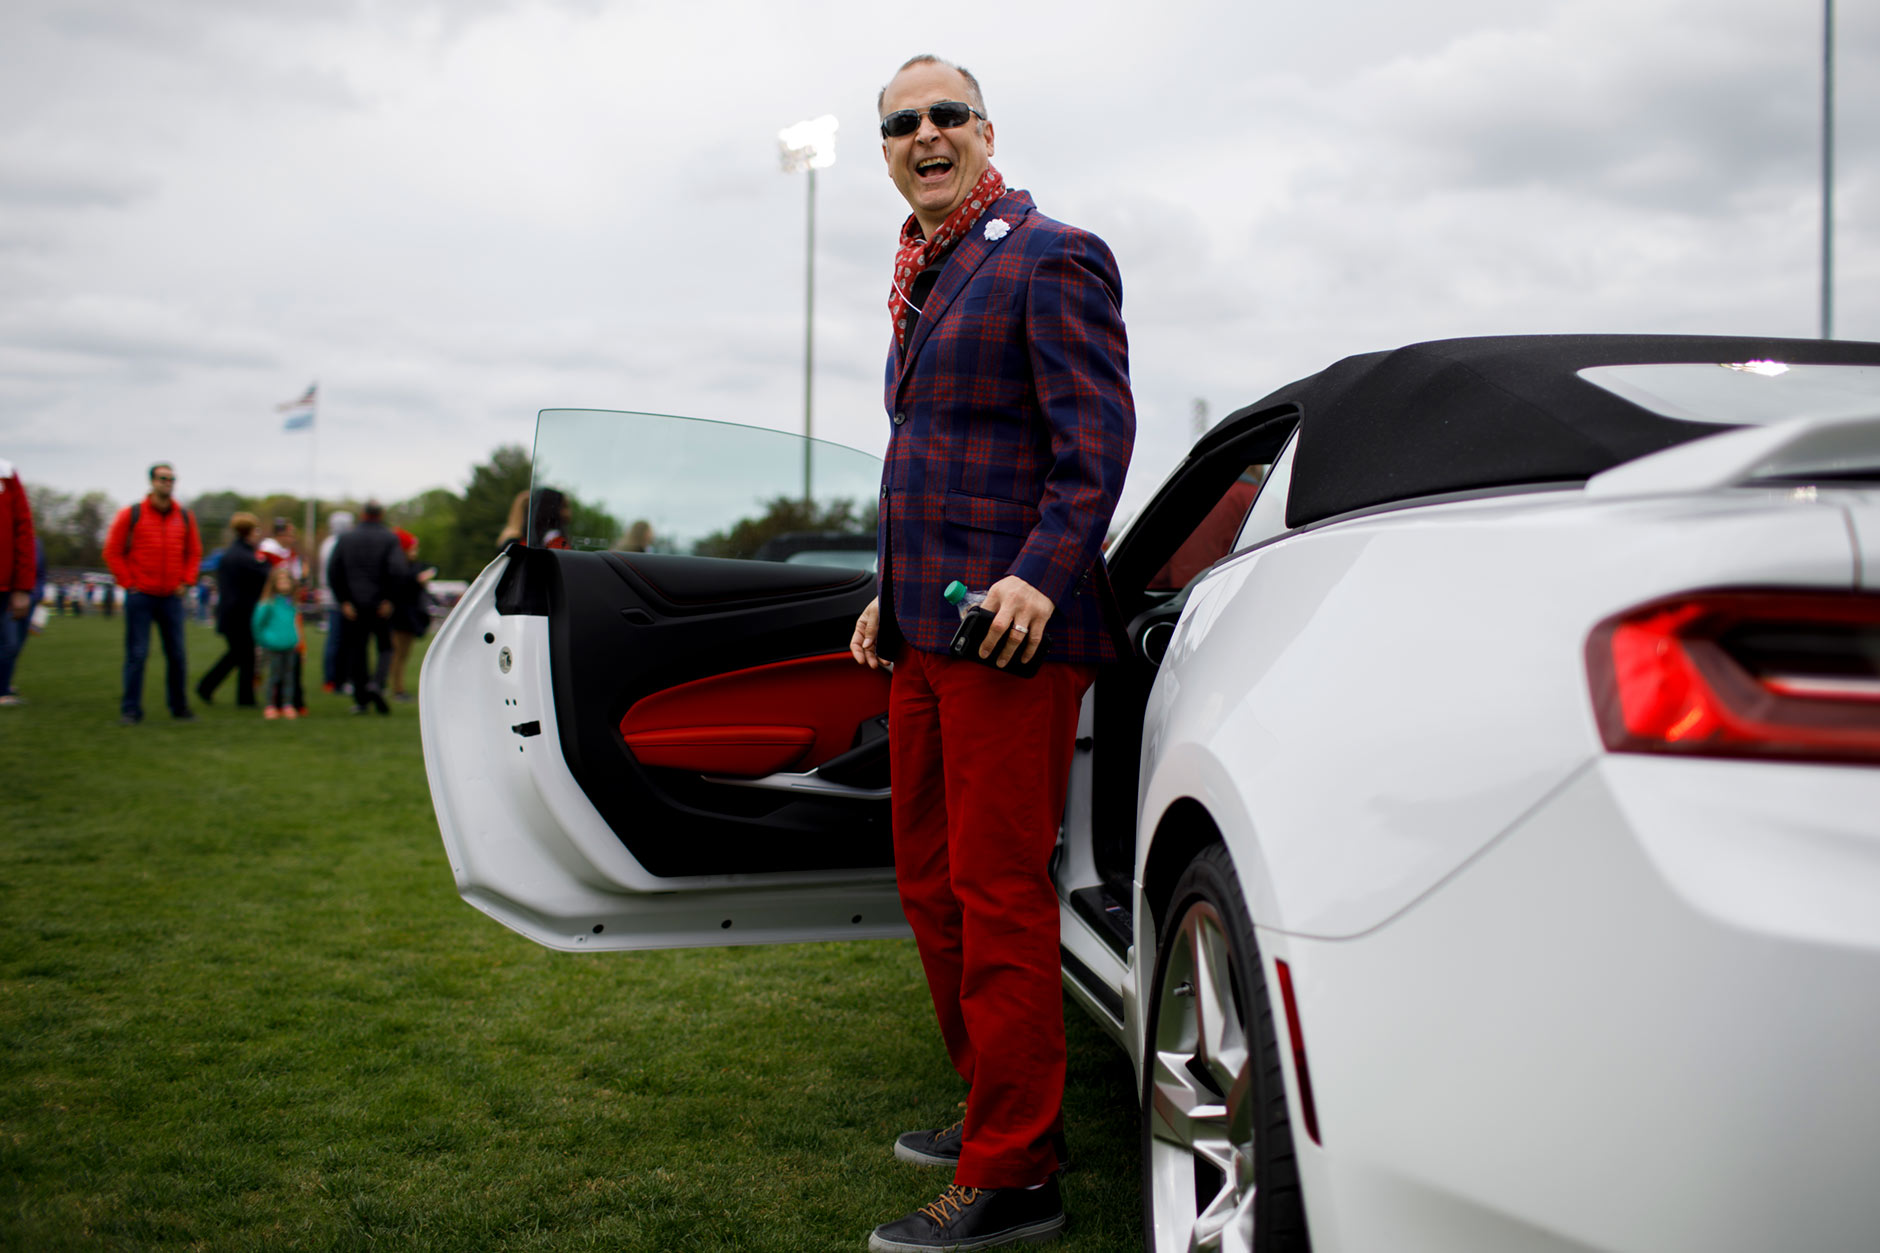 Indiana University Alumni Association Executive Director JT Forbes prepares to drive the Indy 500 Pace Car during the Men's Little 500 at Bill Armstrong Stadium on Saturday, April 22, 2017. (James Brosher/IU Communications)